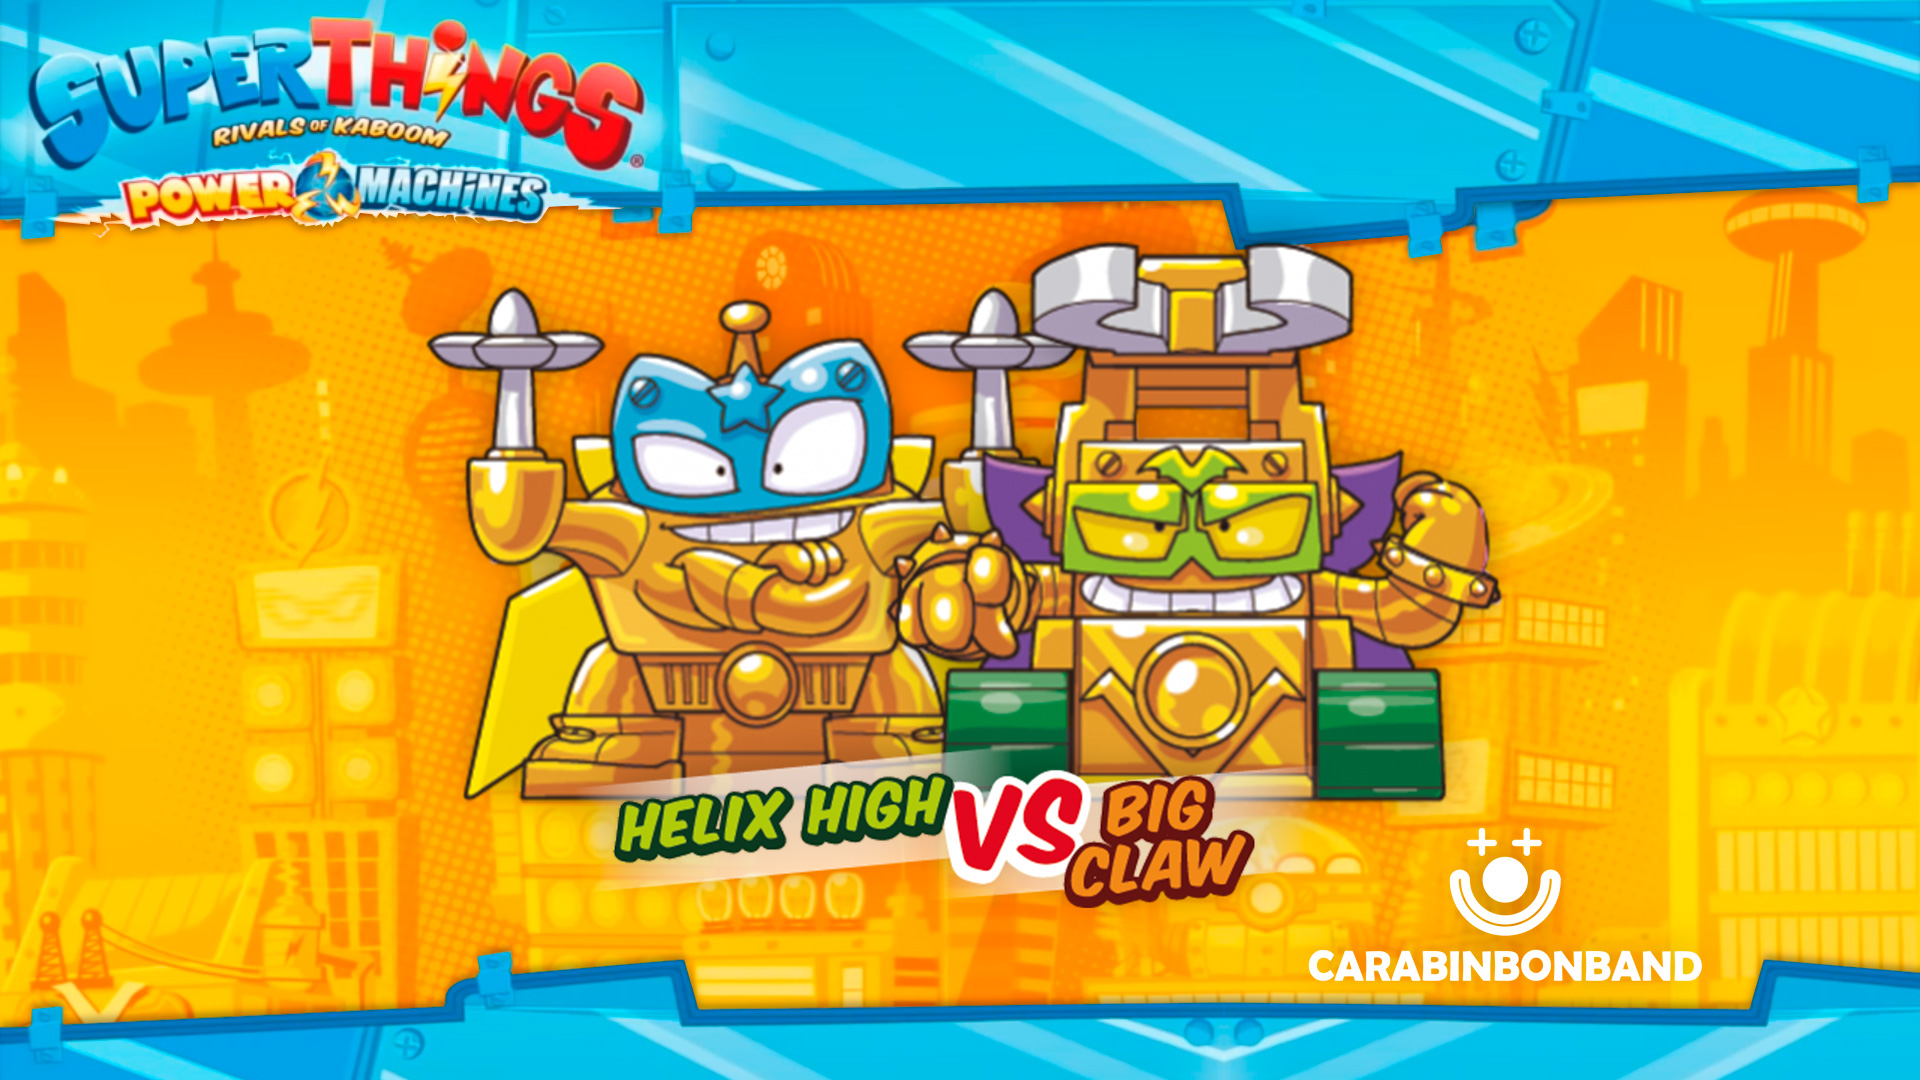 SUPERTHINGS SERIES 7 POWER MACHINES - all rivals